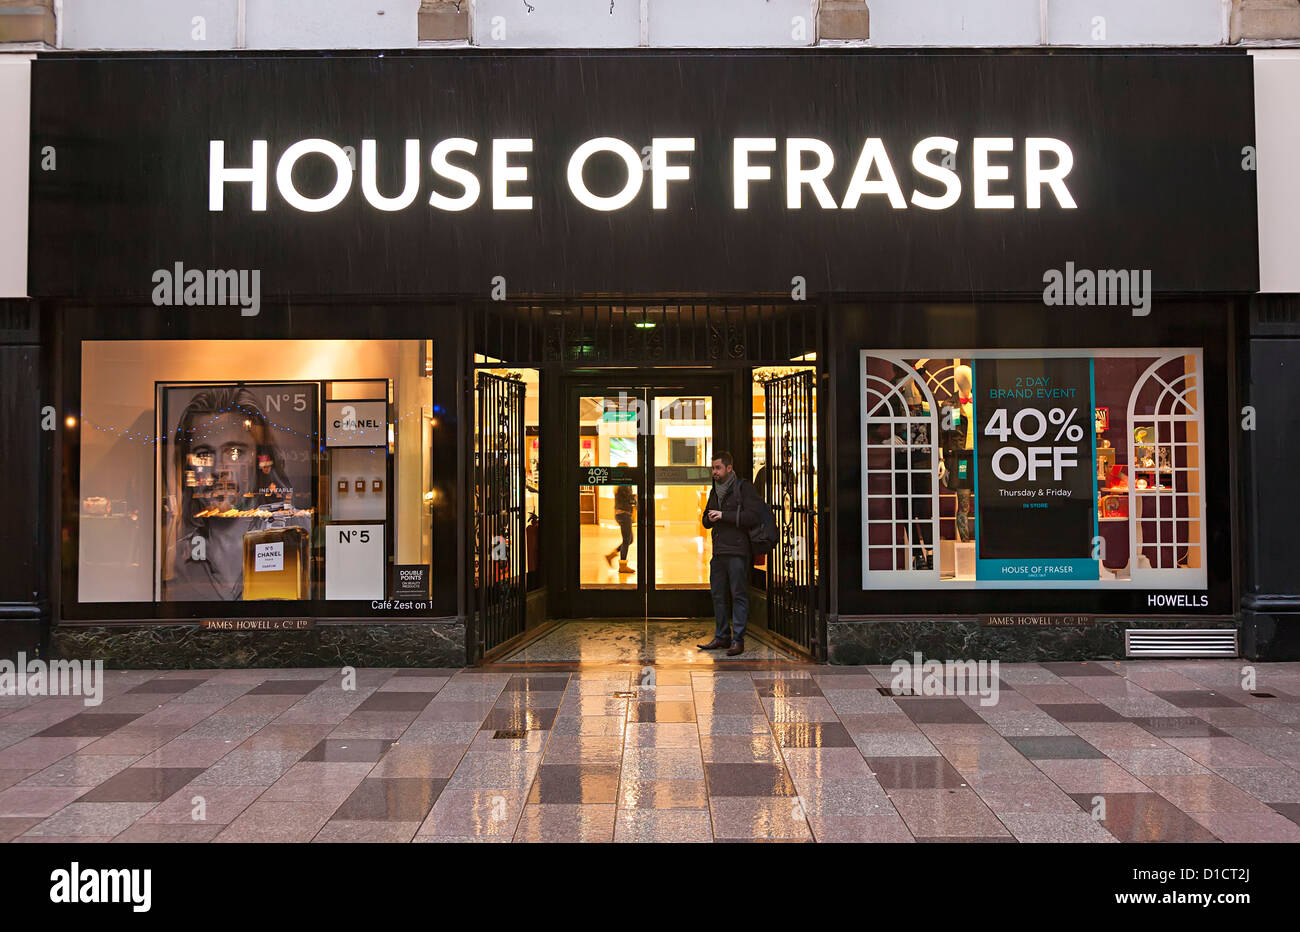 House of Fraser shop front with sale sign, Cardiff, Wales, UK - Stock Image